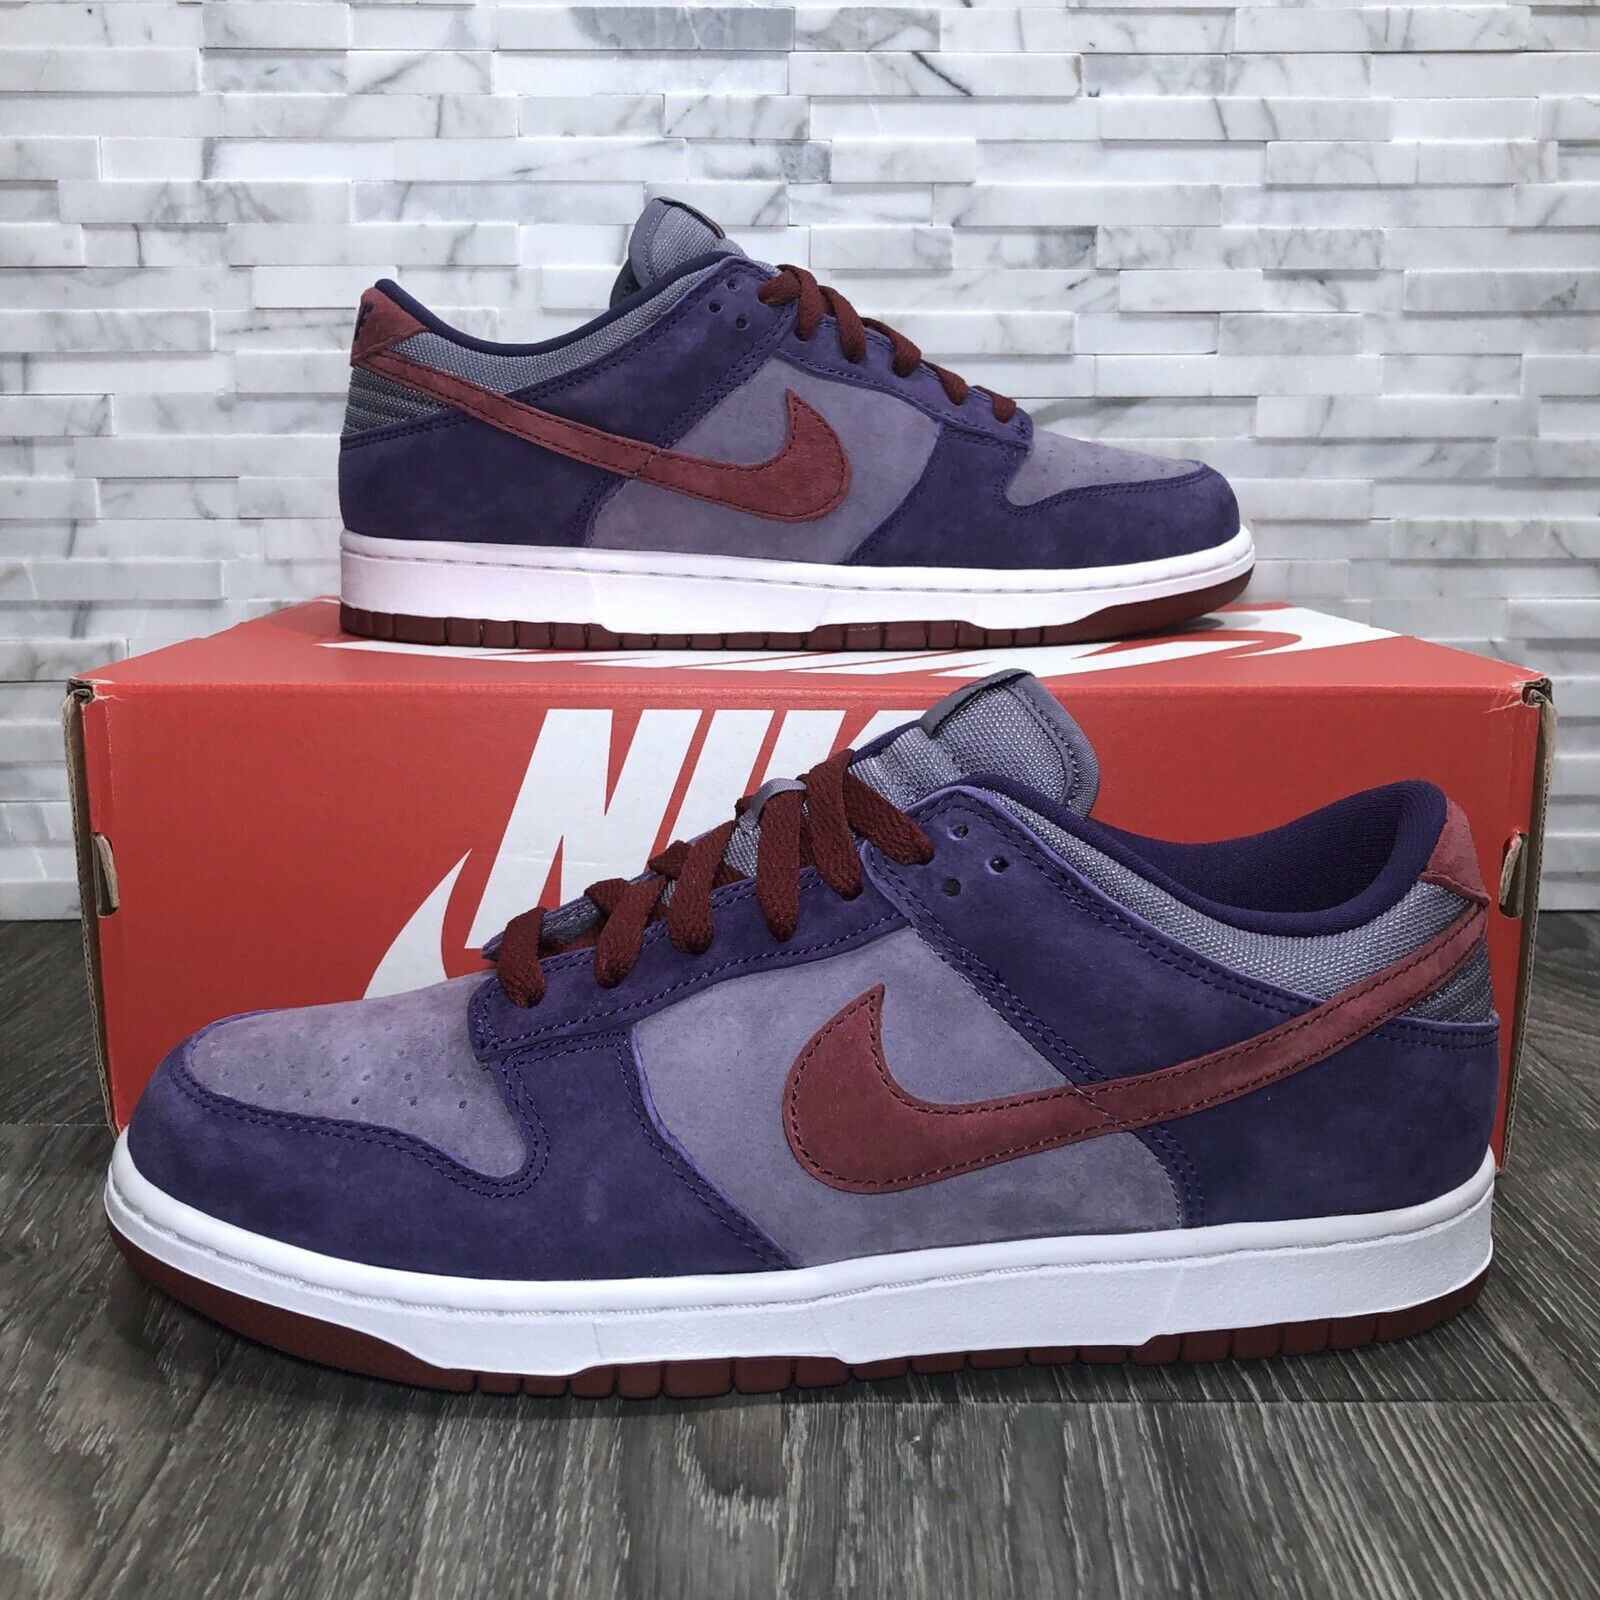 Nike Dunk Low Plum 2020